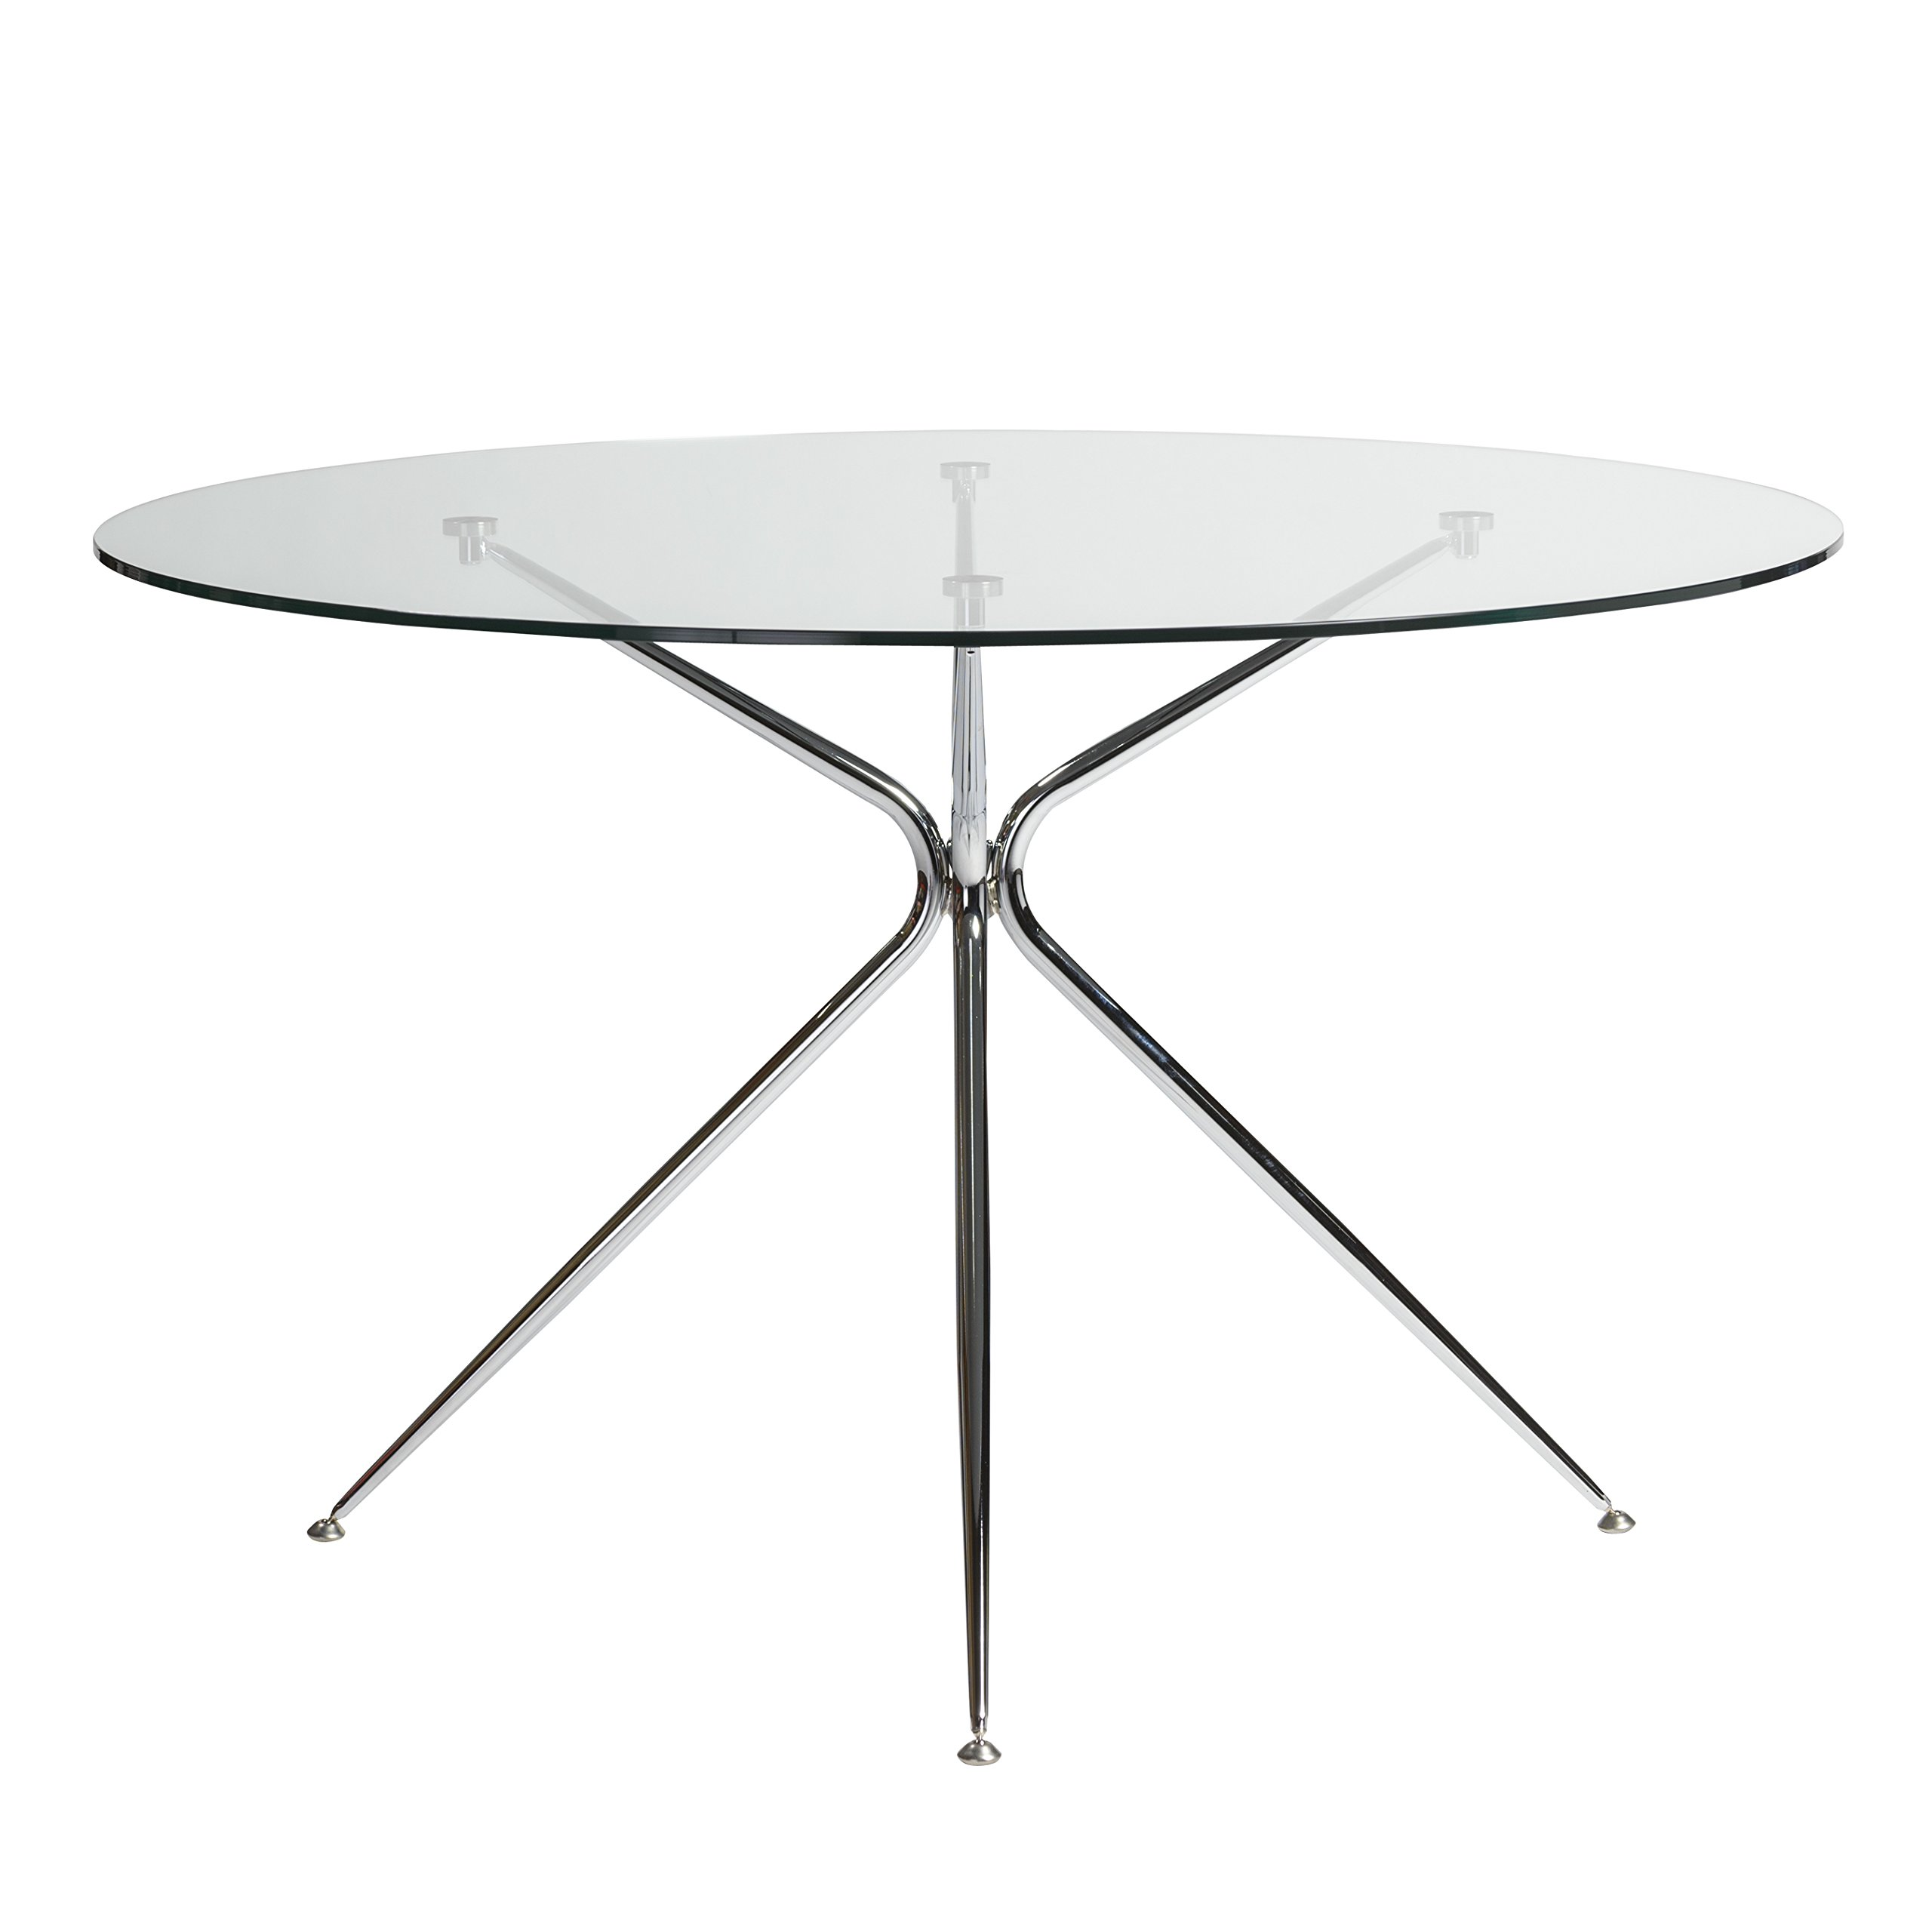 48'' Round Glass Meeting Table w/Chrome Base by eS (Image #1)